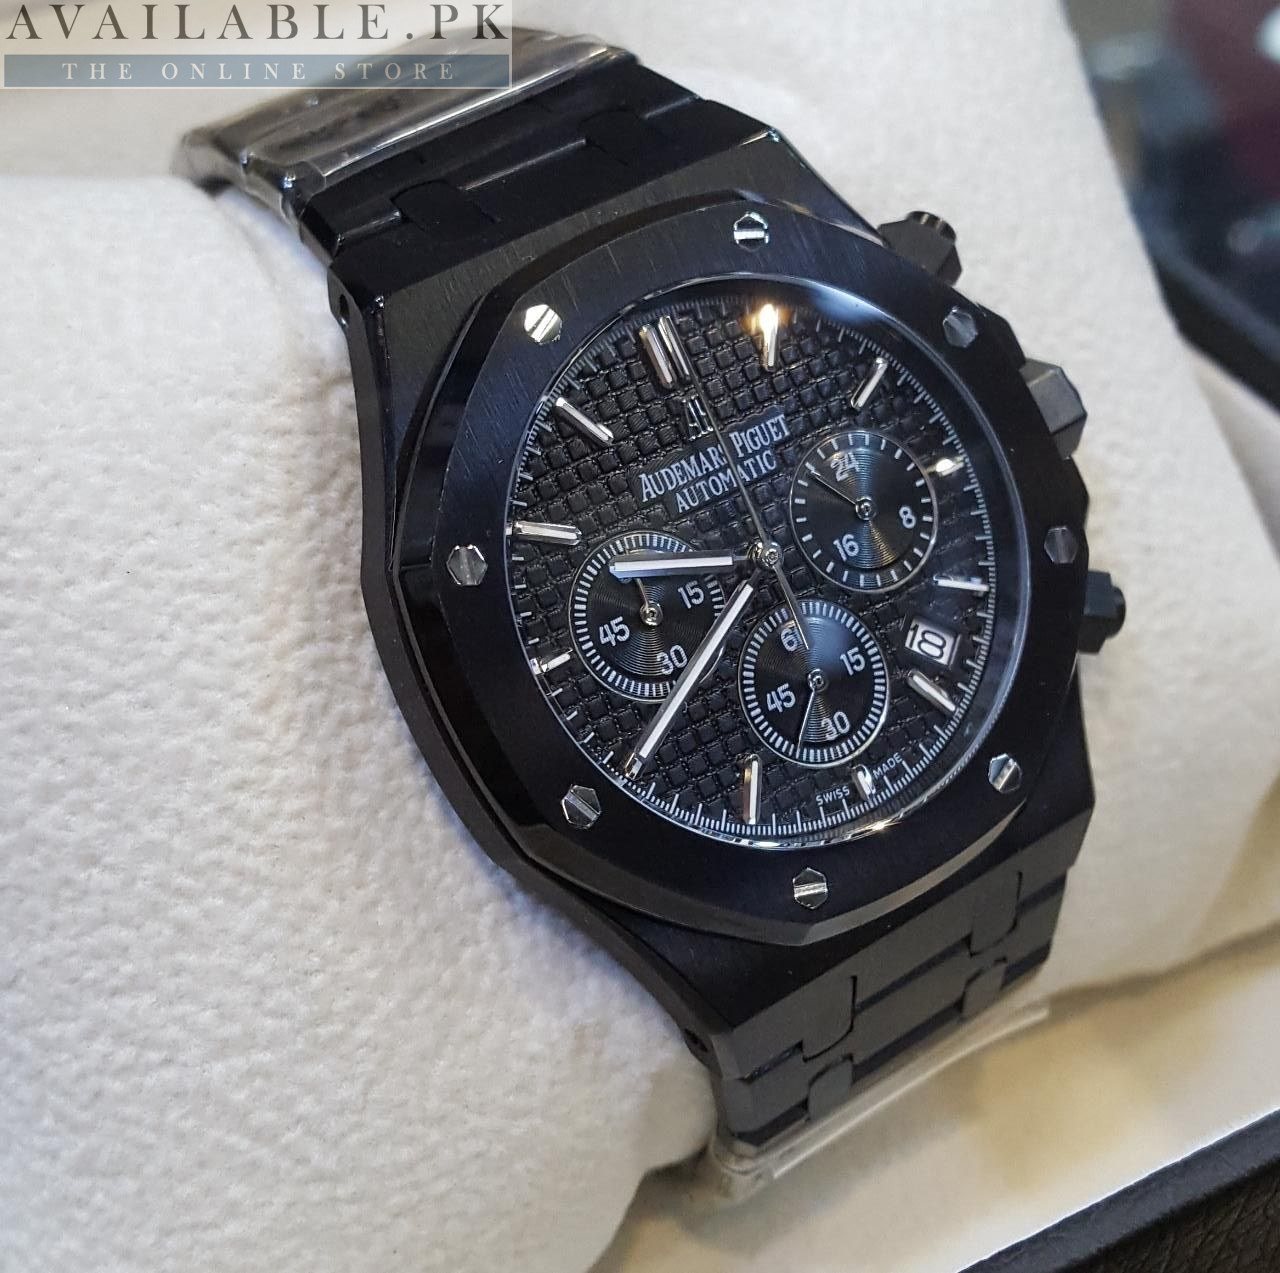 49101060bbbb Audemars Piguet Royal Oak Automatic Black Men s Watch Price In Pakistan